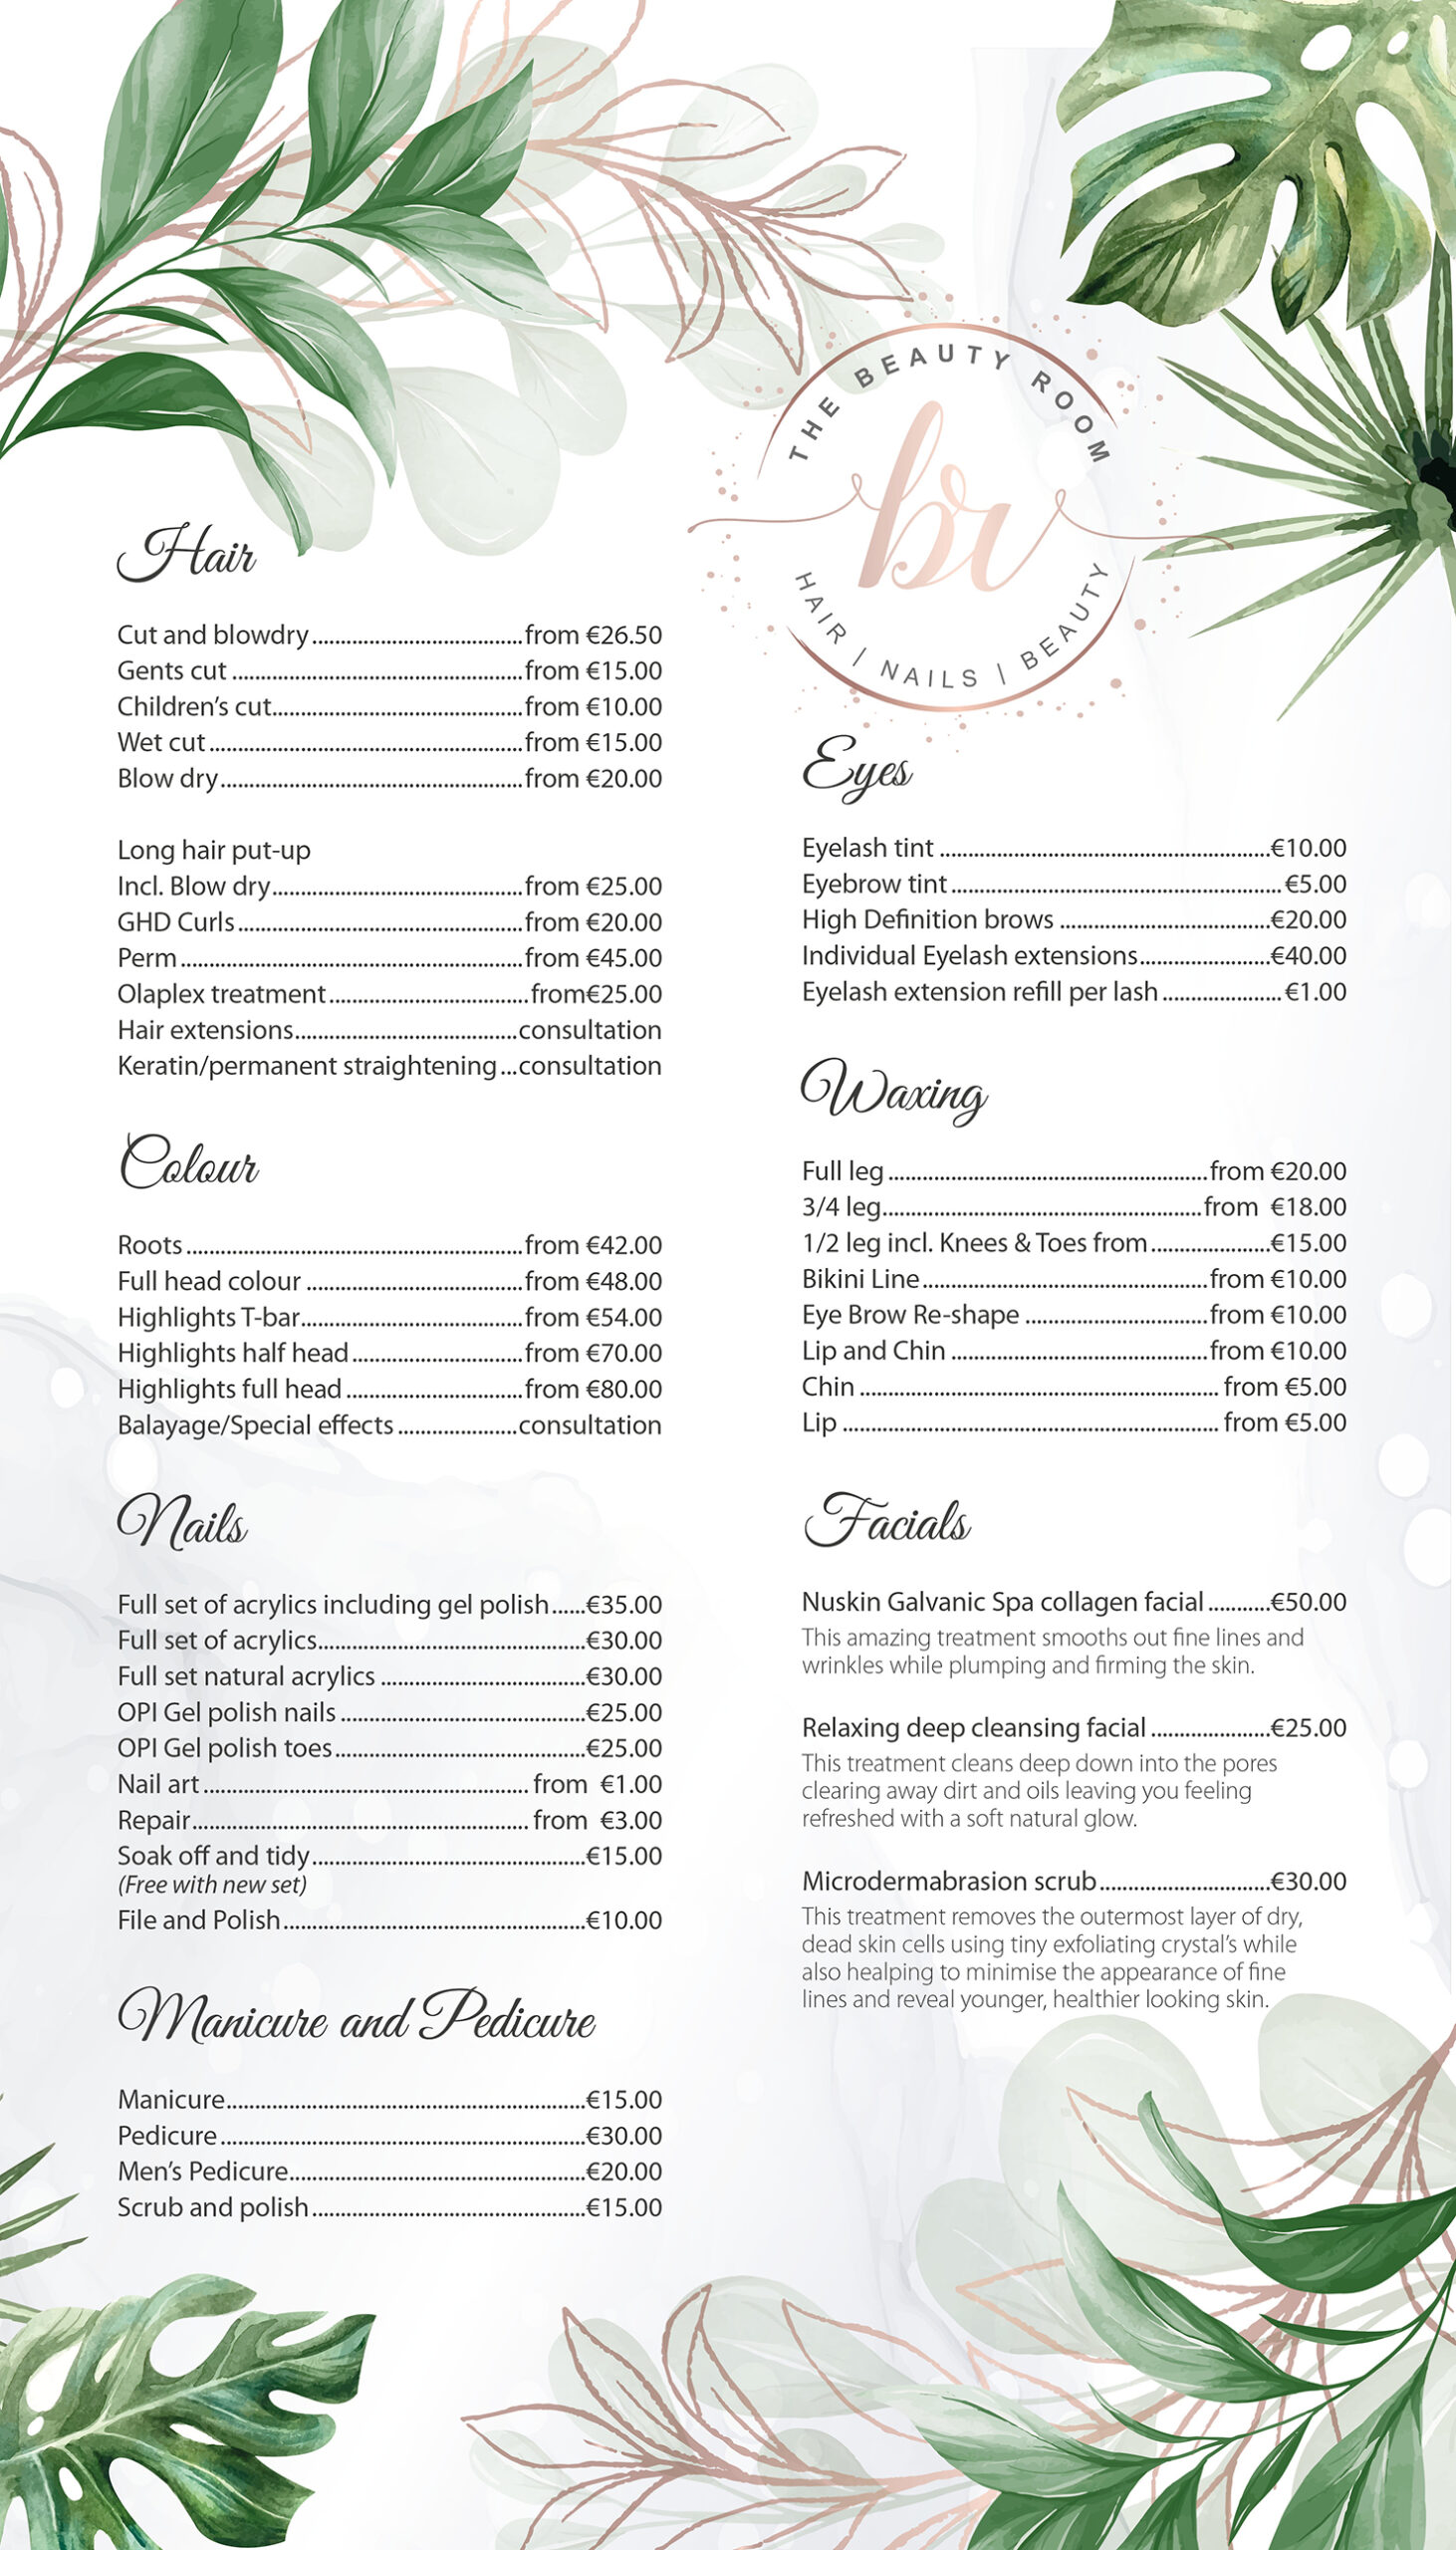 the beauty room price list